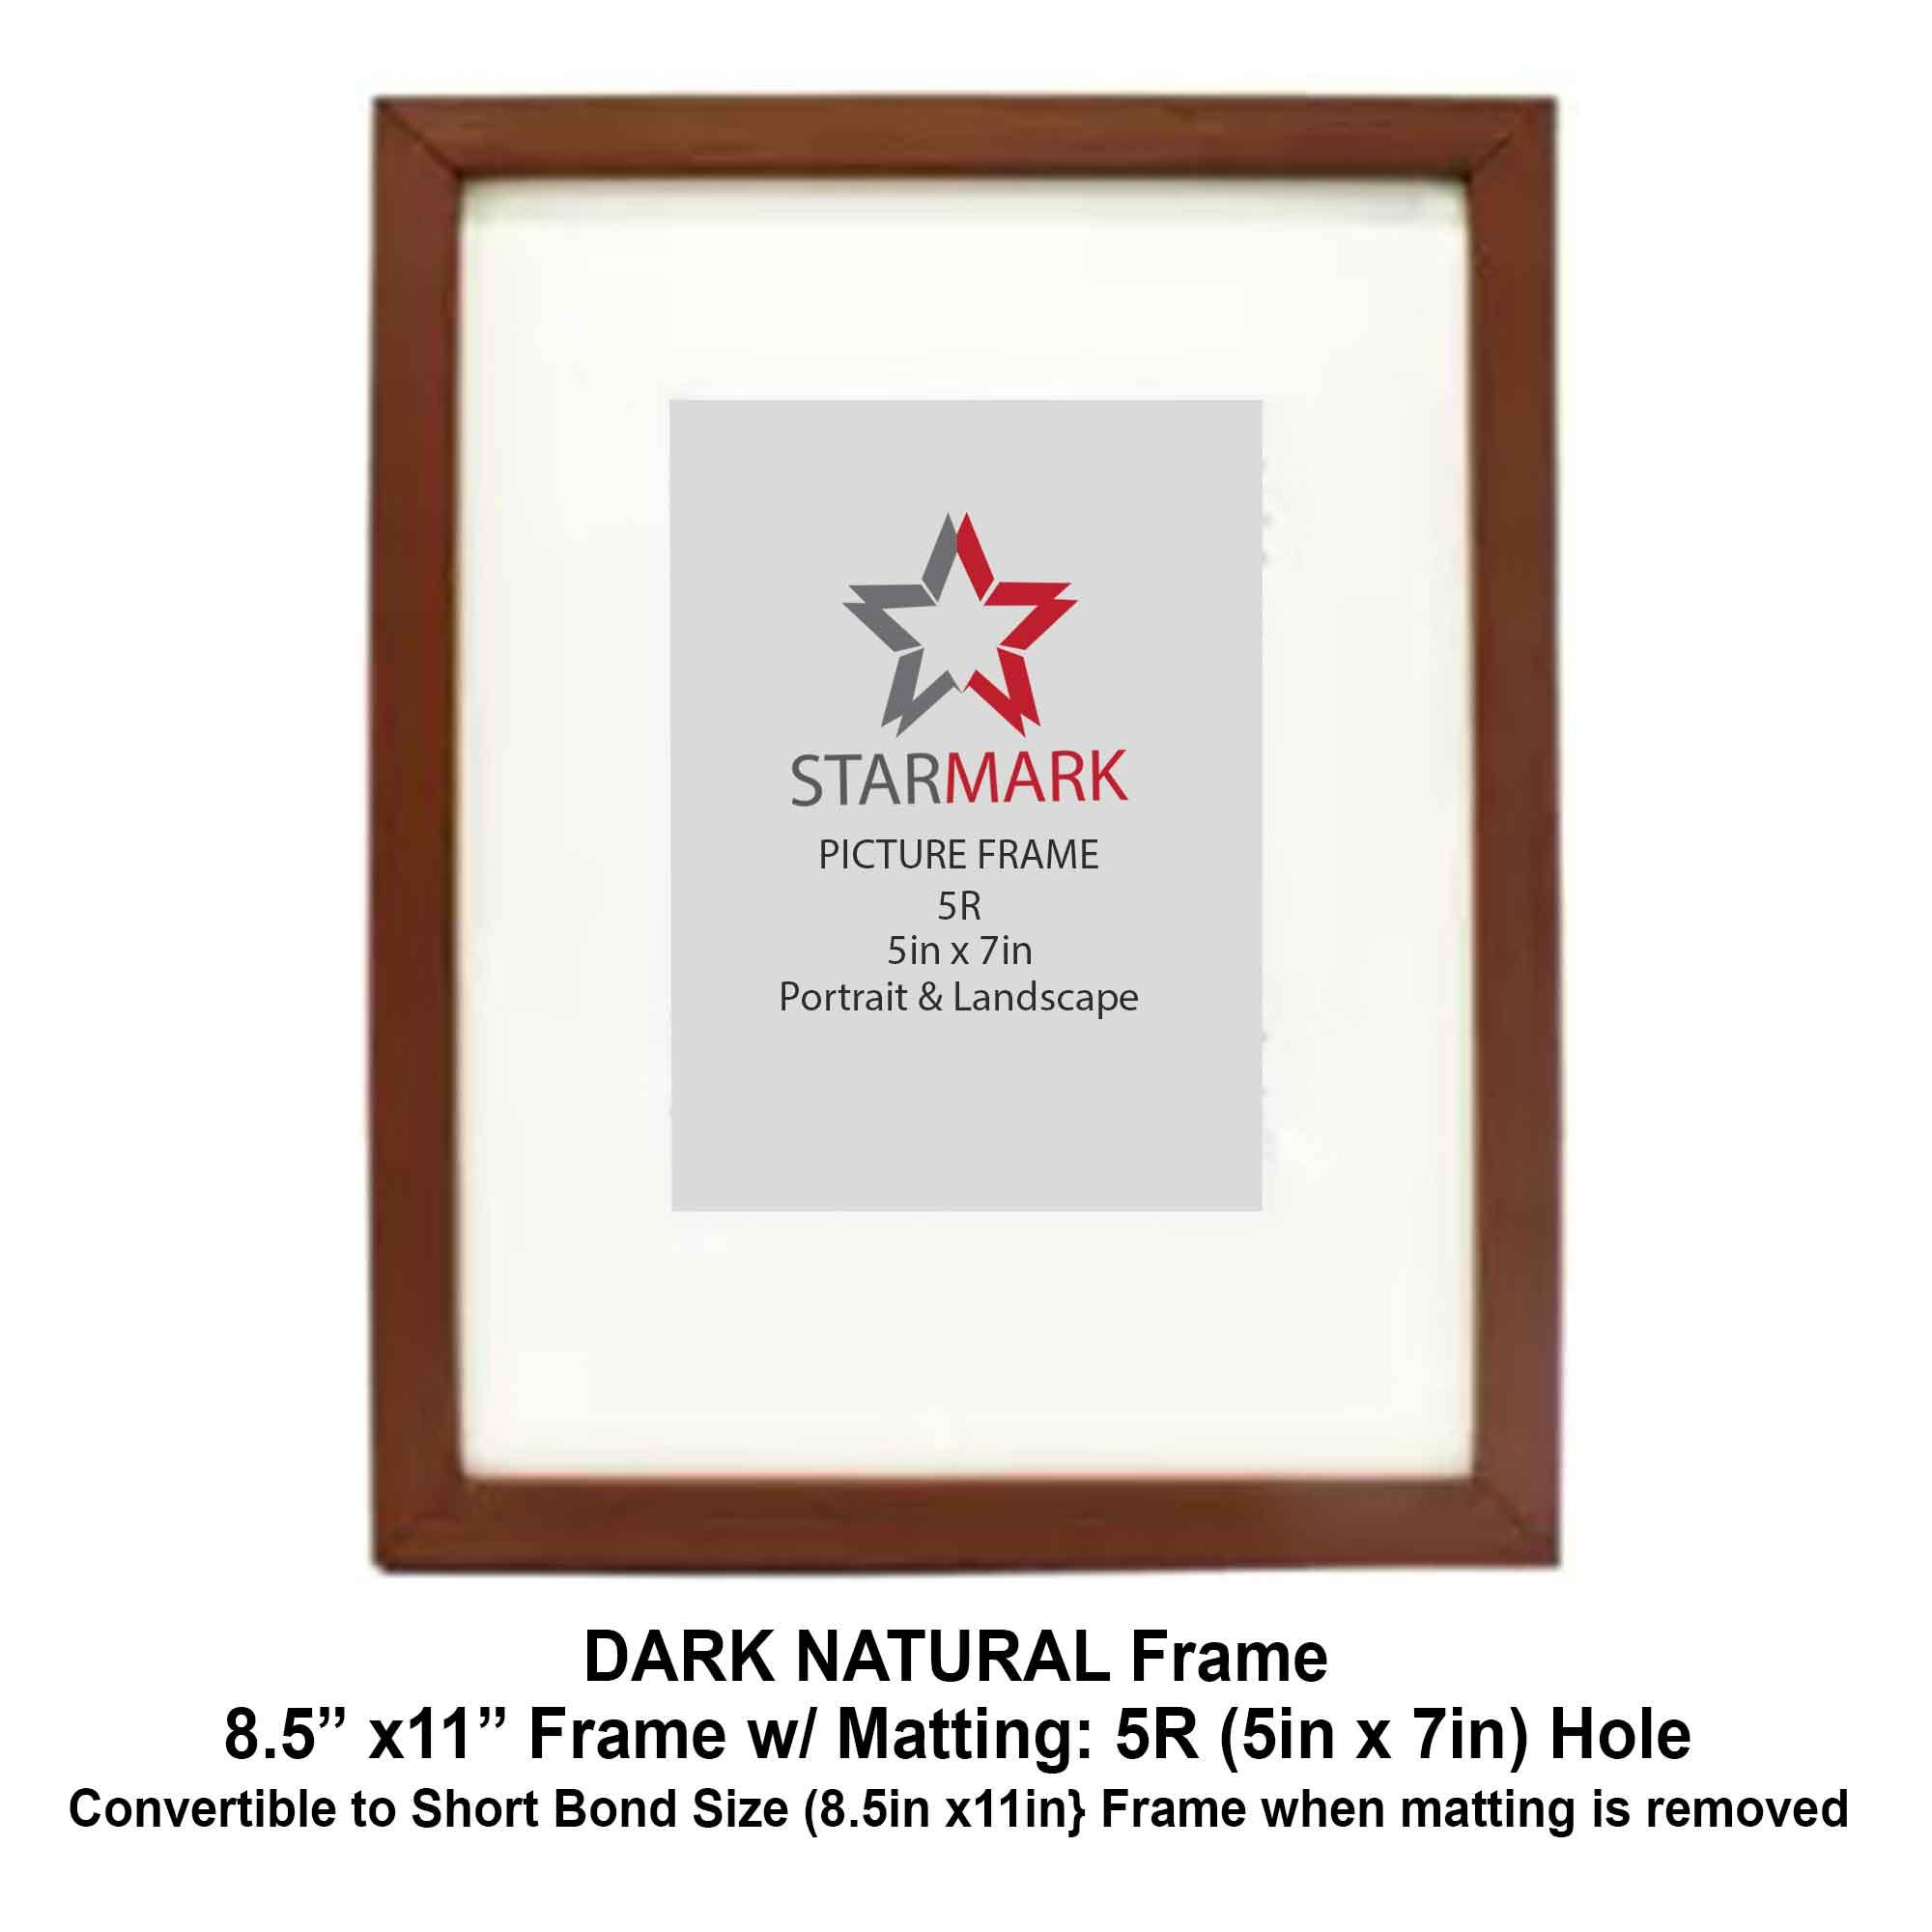 23c34f2fef83 Starmark Picture Frame Frames 8.5x11 inches with Matting to 5R Photo - 5x7  inches -